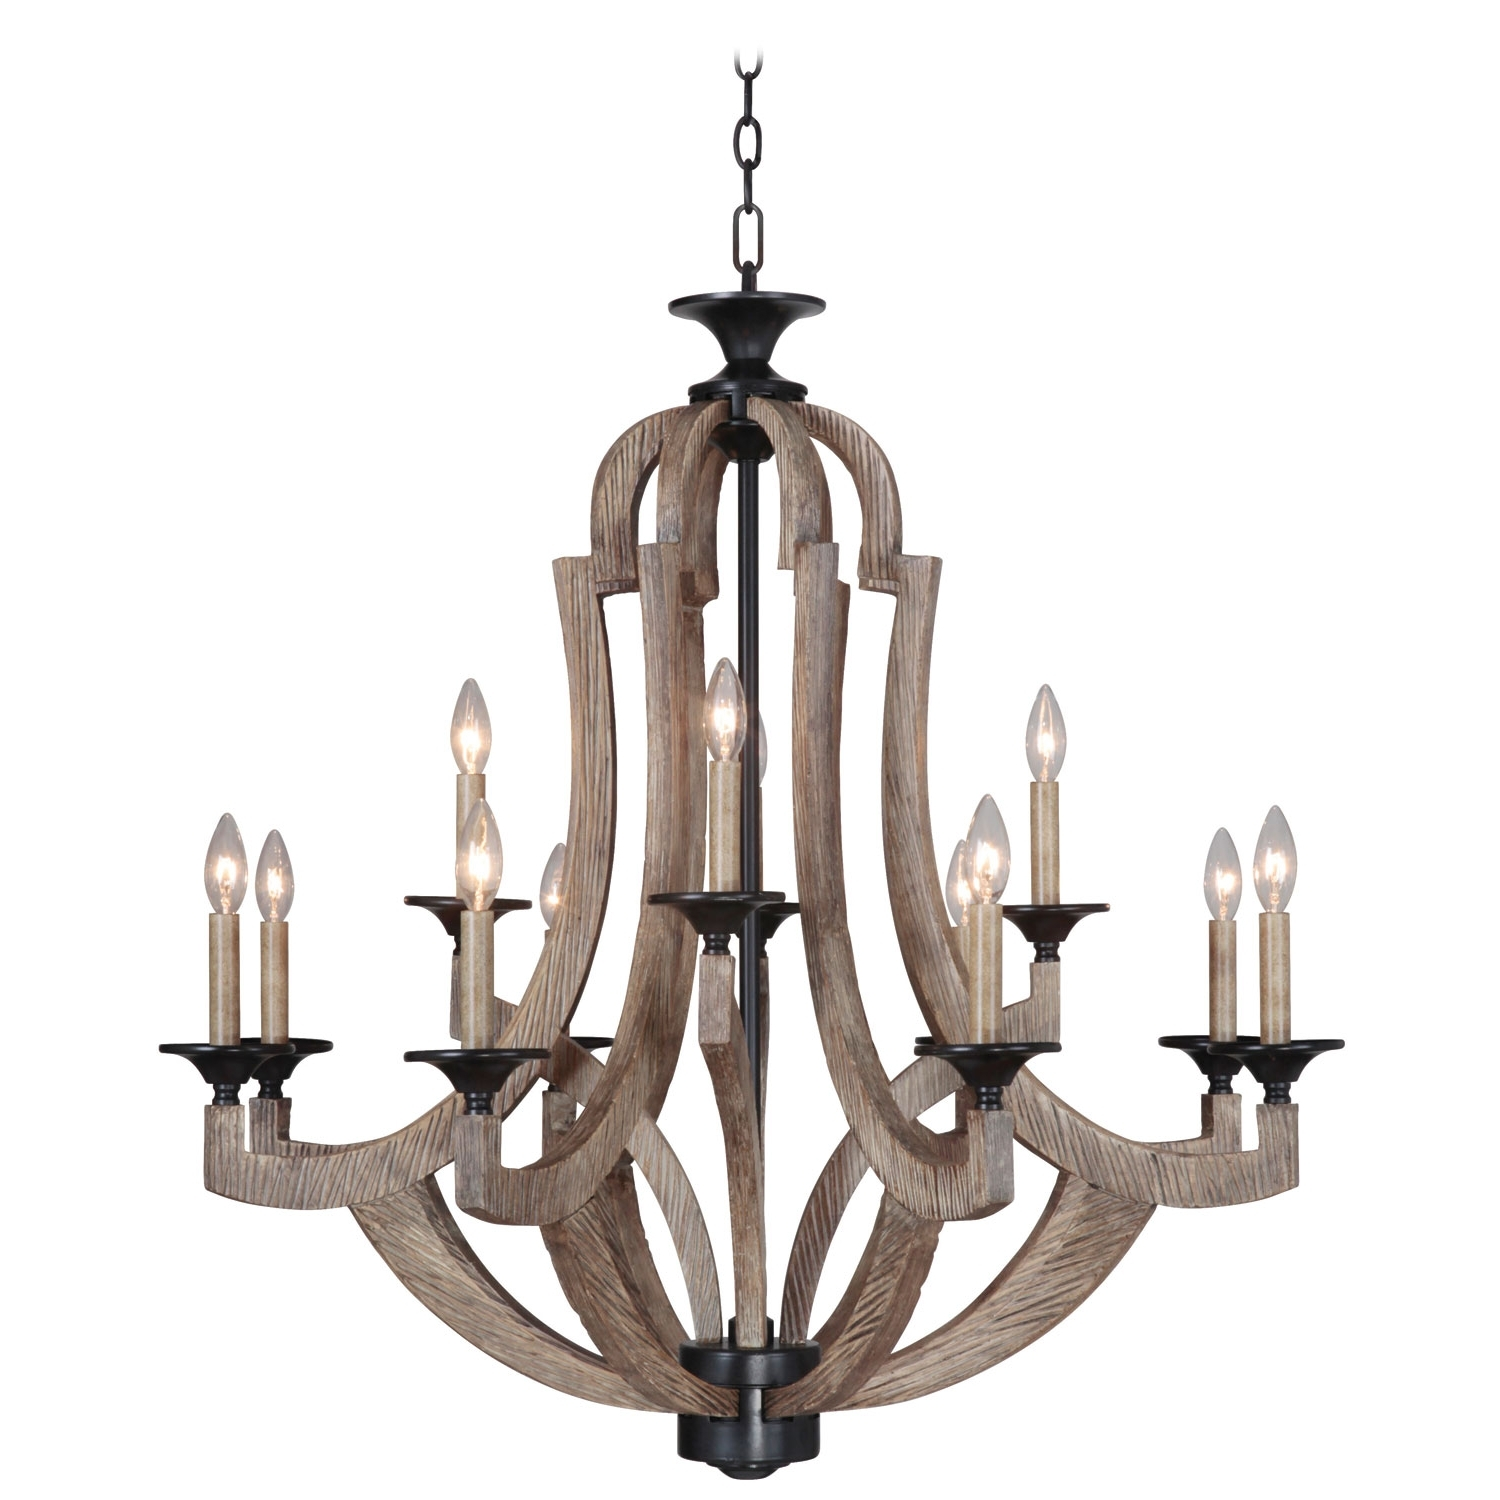 Bellacor In 2019 French Country Chandeliers (View 11 of 20)